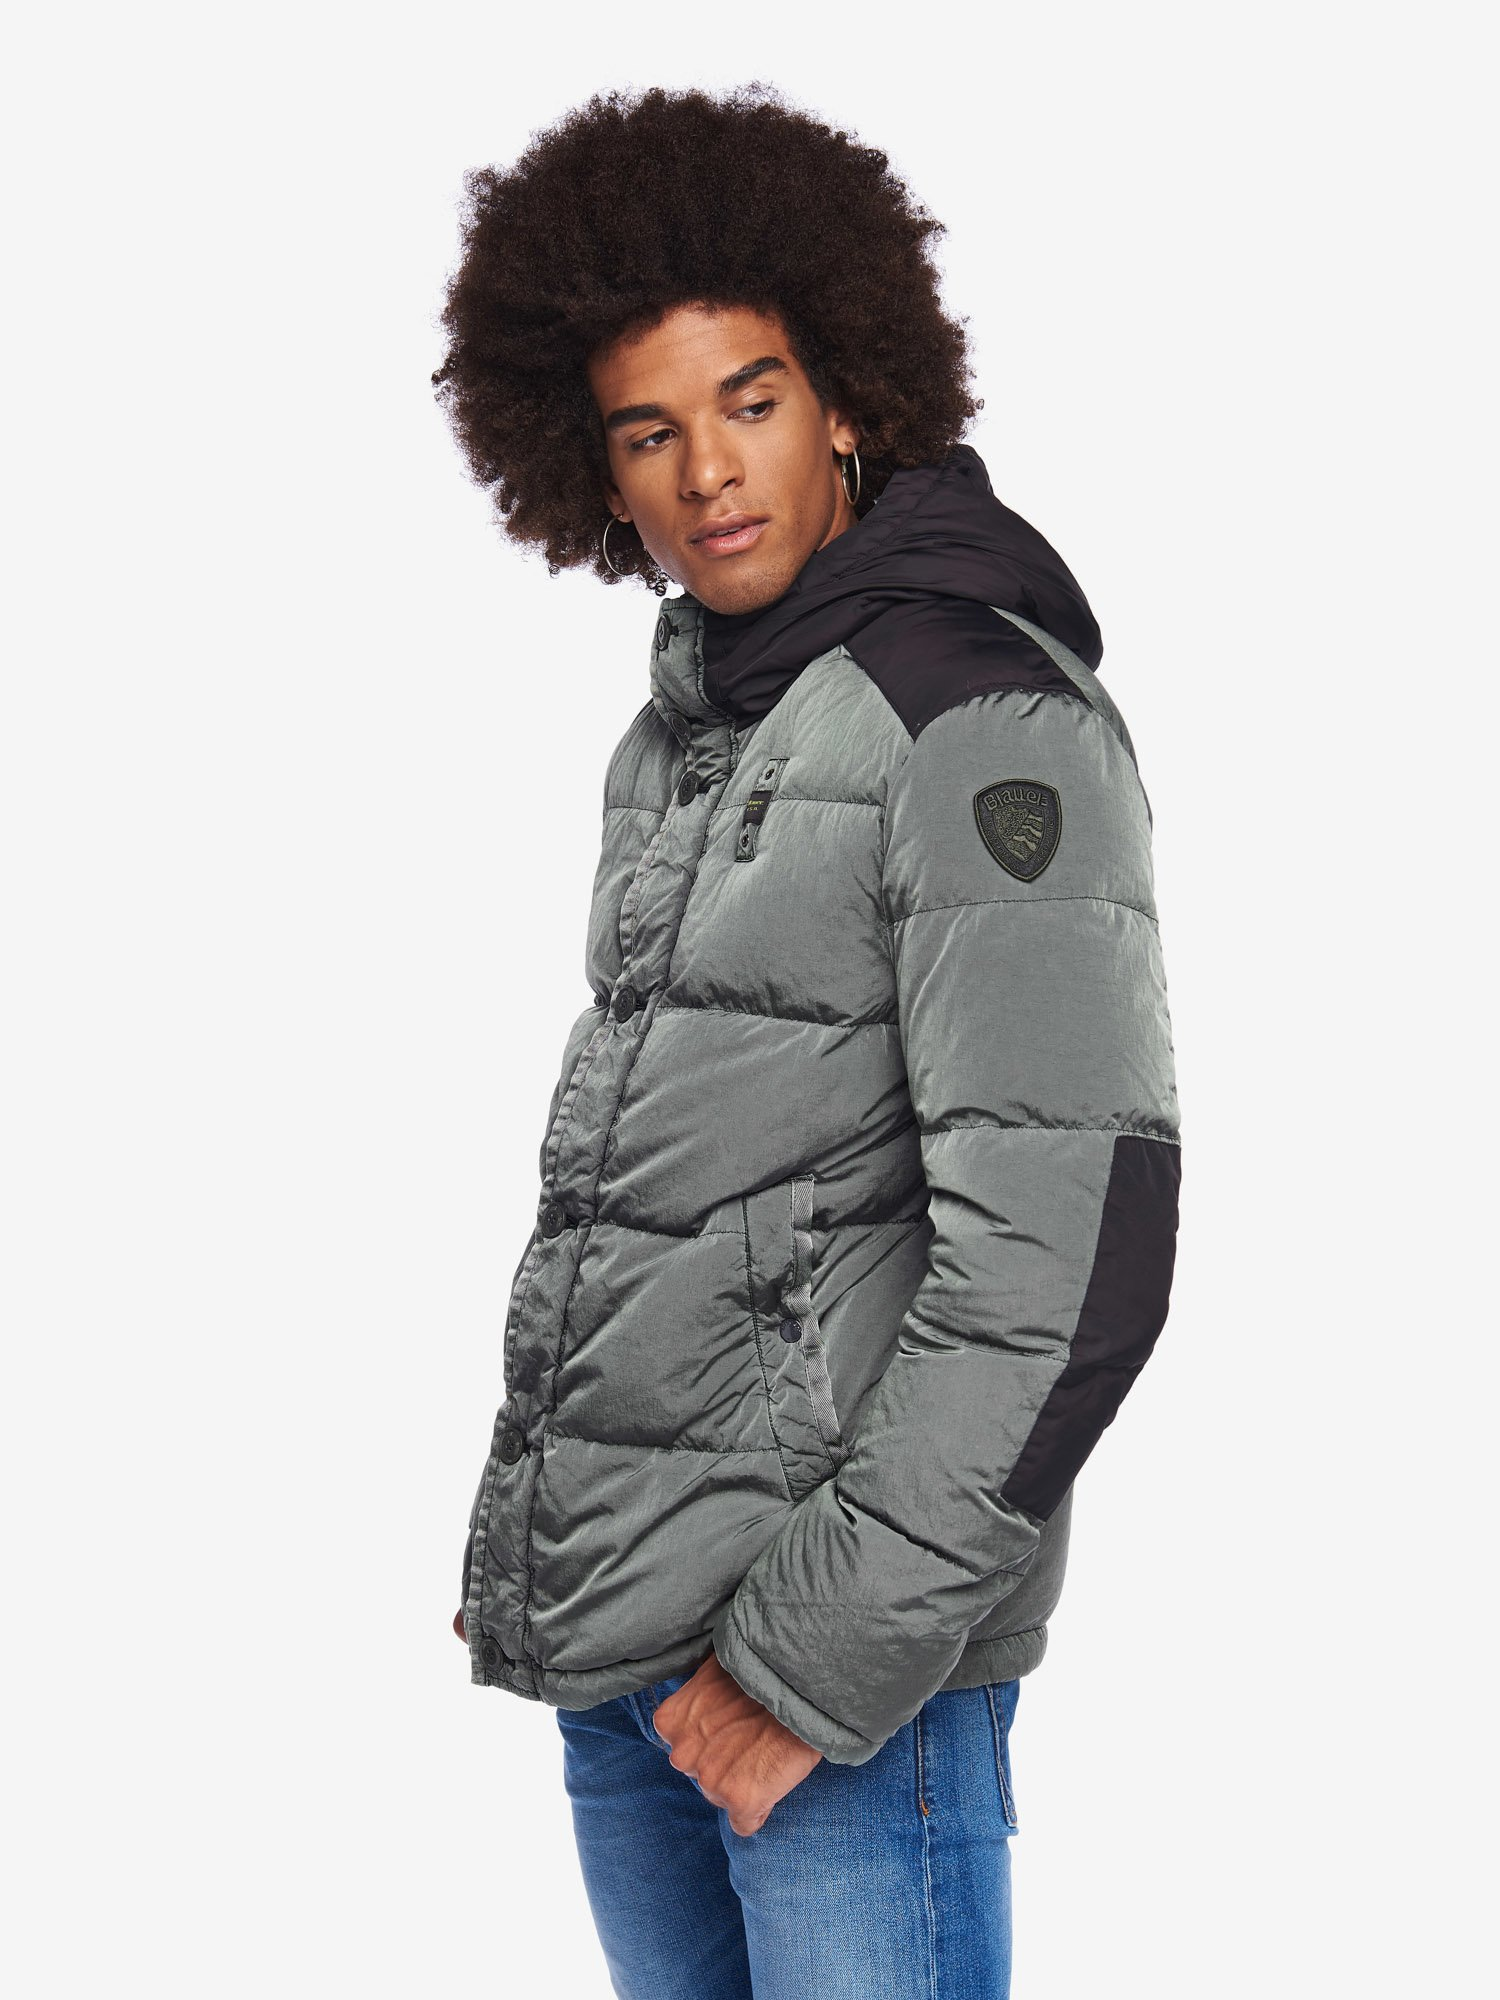 MCDONALD NYLON JACKET - Blauer